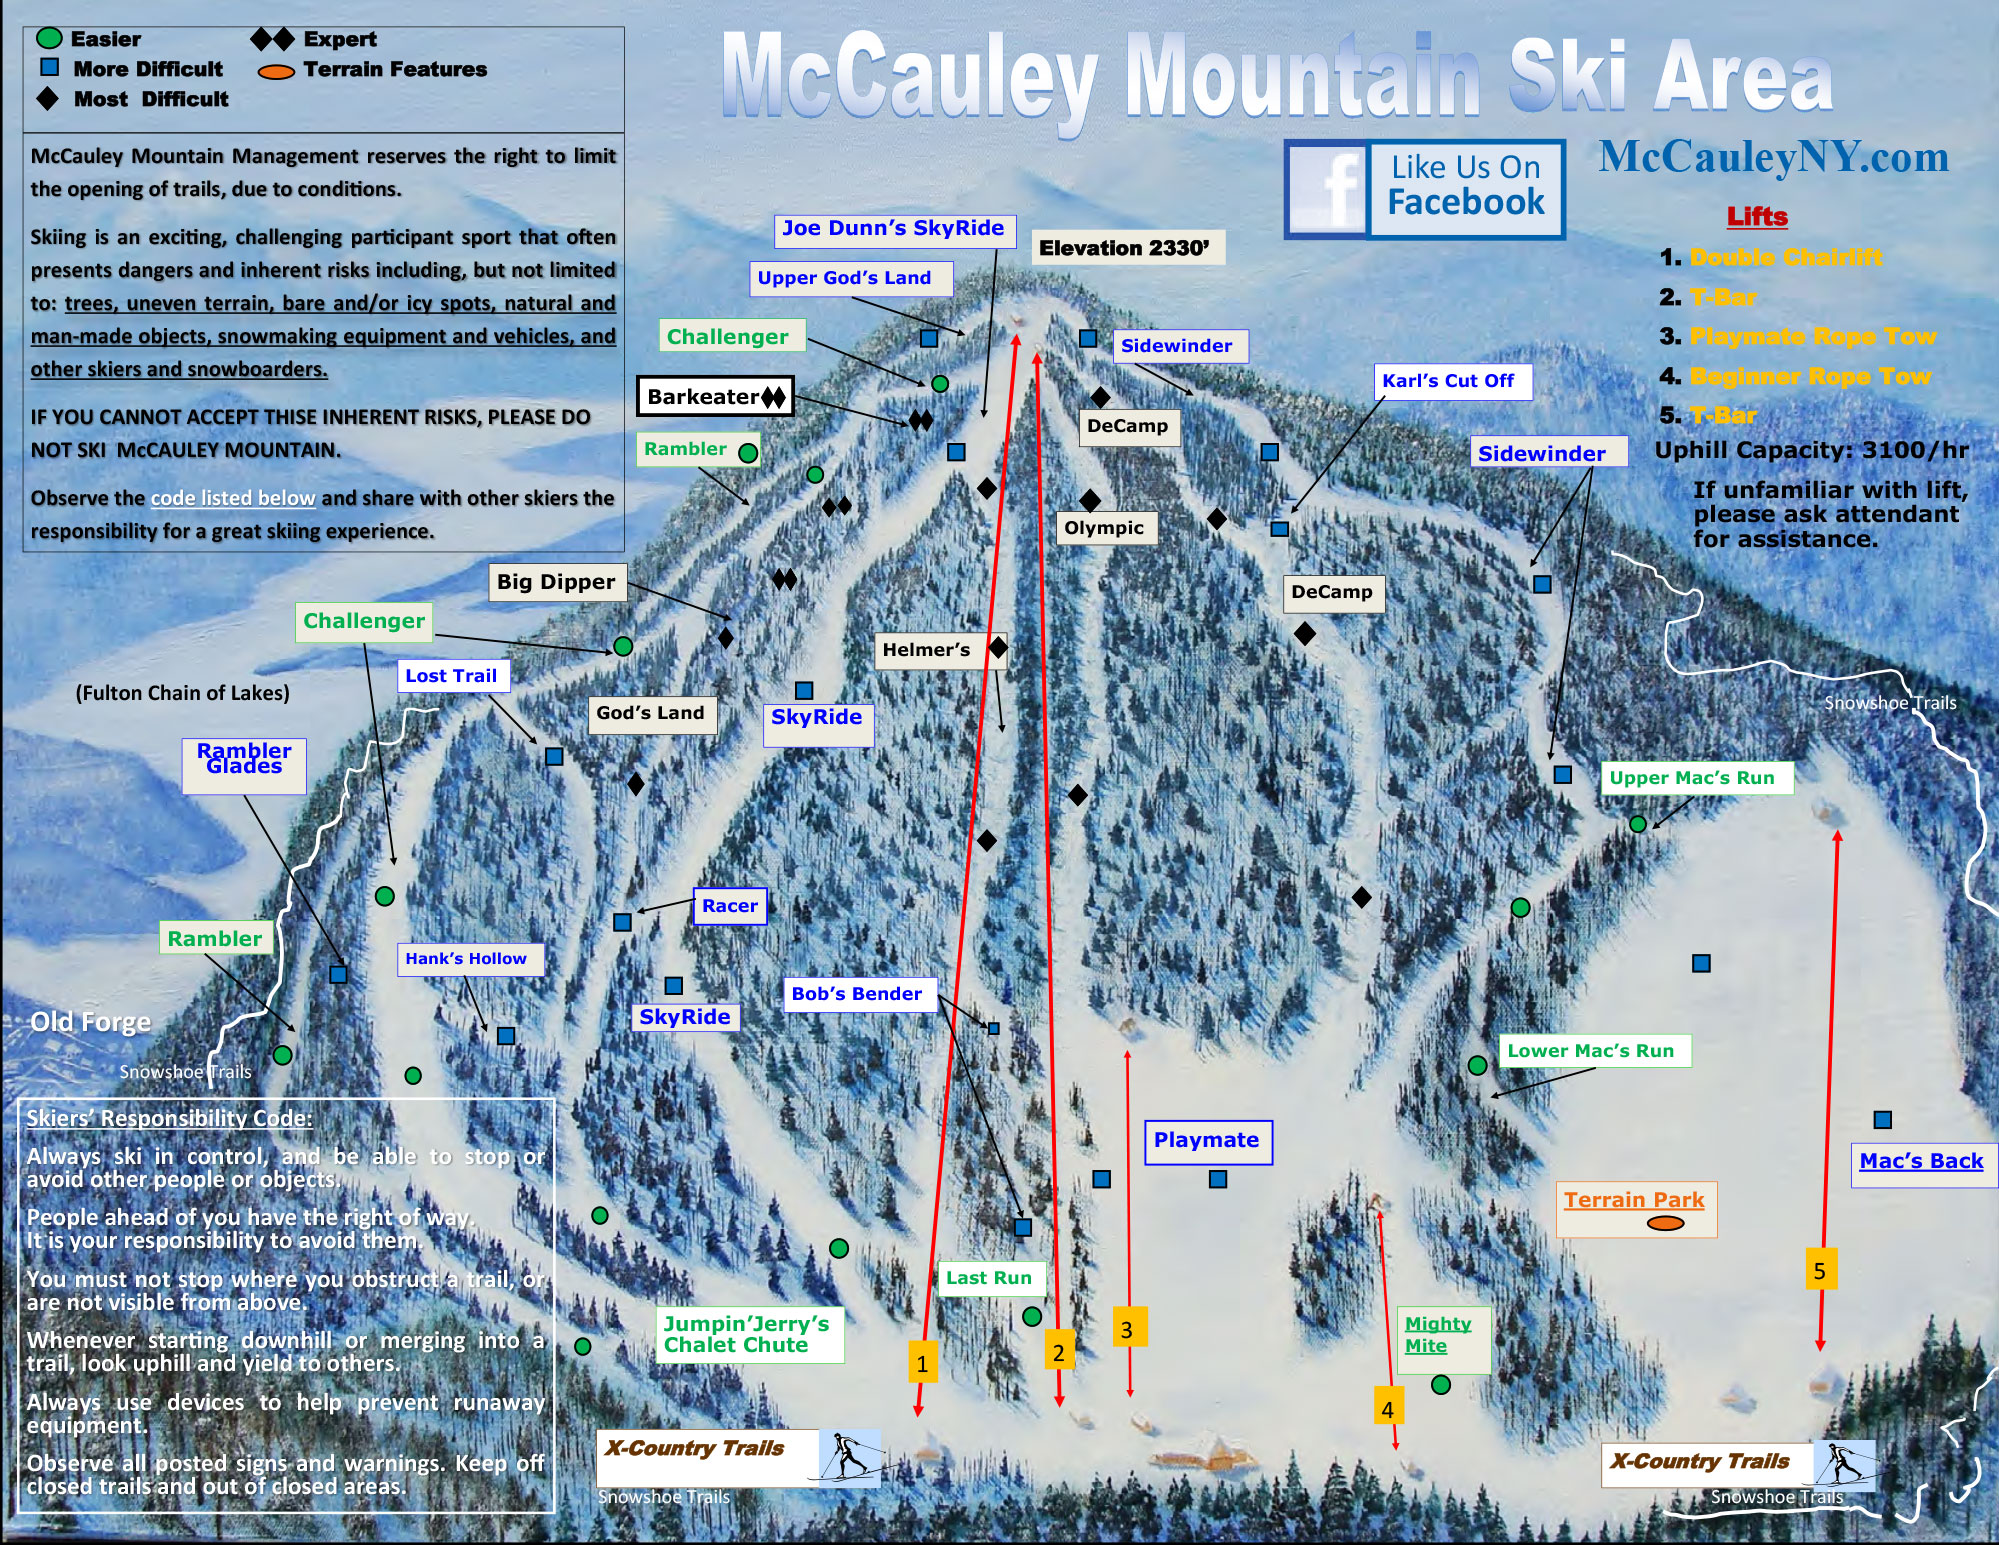 McCauley Mountain Directions on spring mountain ski resort trail map, old forge ny snowmobile trail map, ny hiking trails map, new york ave dc, beech mountain ski resort map, new york state ski areas, poconos ski resort map, lake placid ski resort map, new england ski areas map, sunrise ski resort map, new england ski resorts map, park city trail map, new york state skiing, bretton woods ski resort map, mammoth ski resort map, new york resorts and lodges, india ski resorts map, lookout ski resort idaho map, blue knob ski resort trail map, new jersey ski resorts map,